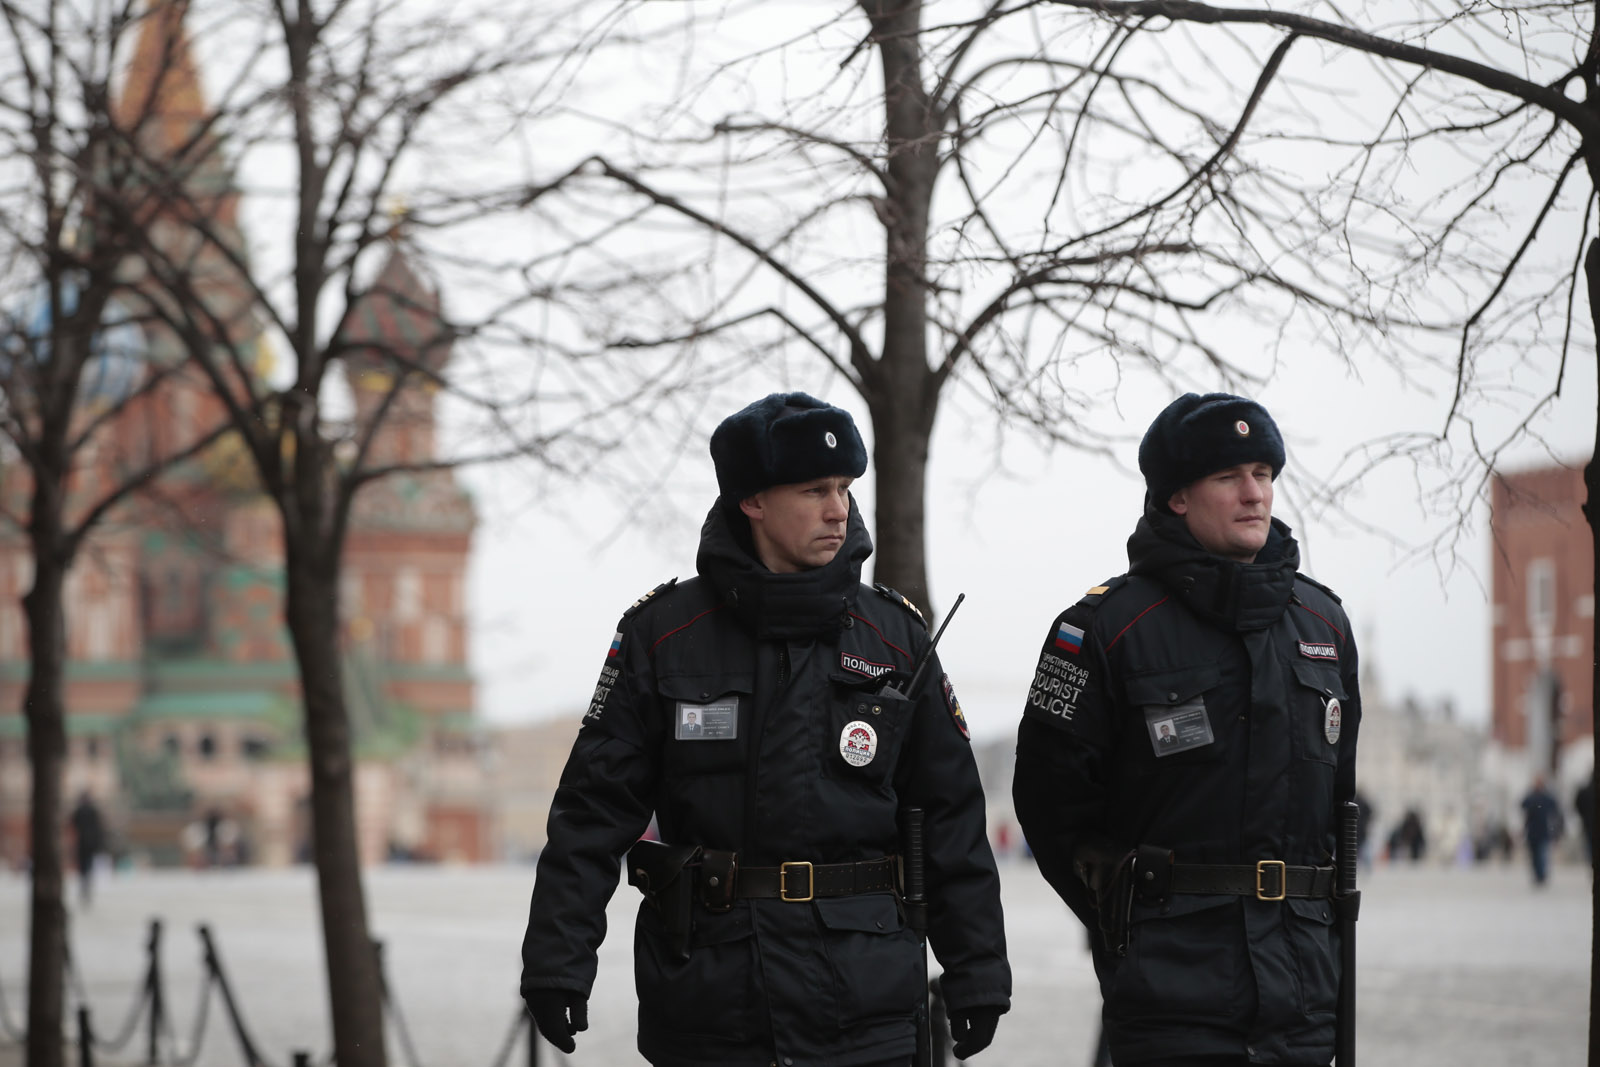 Tourist police officers patrol the Red Square in Moscow, Russia, Tuesday, March 22, 2016. Authorities in Europe have tightened security at airports, on subways, at the borders and on city streets after deadly attacks Tuesday on the Brussels airport and its subway system. (AP Photo/ Pavel Golovkin)